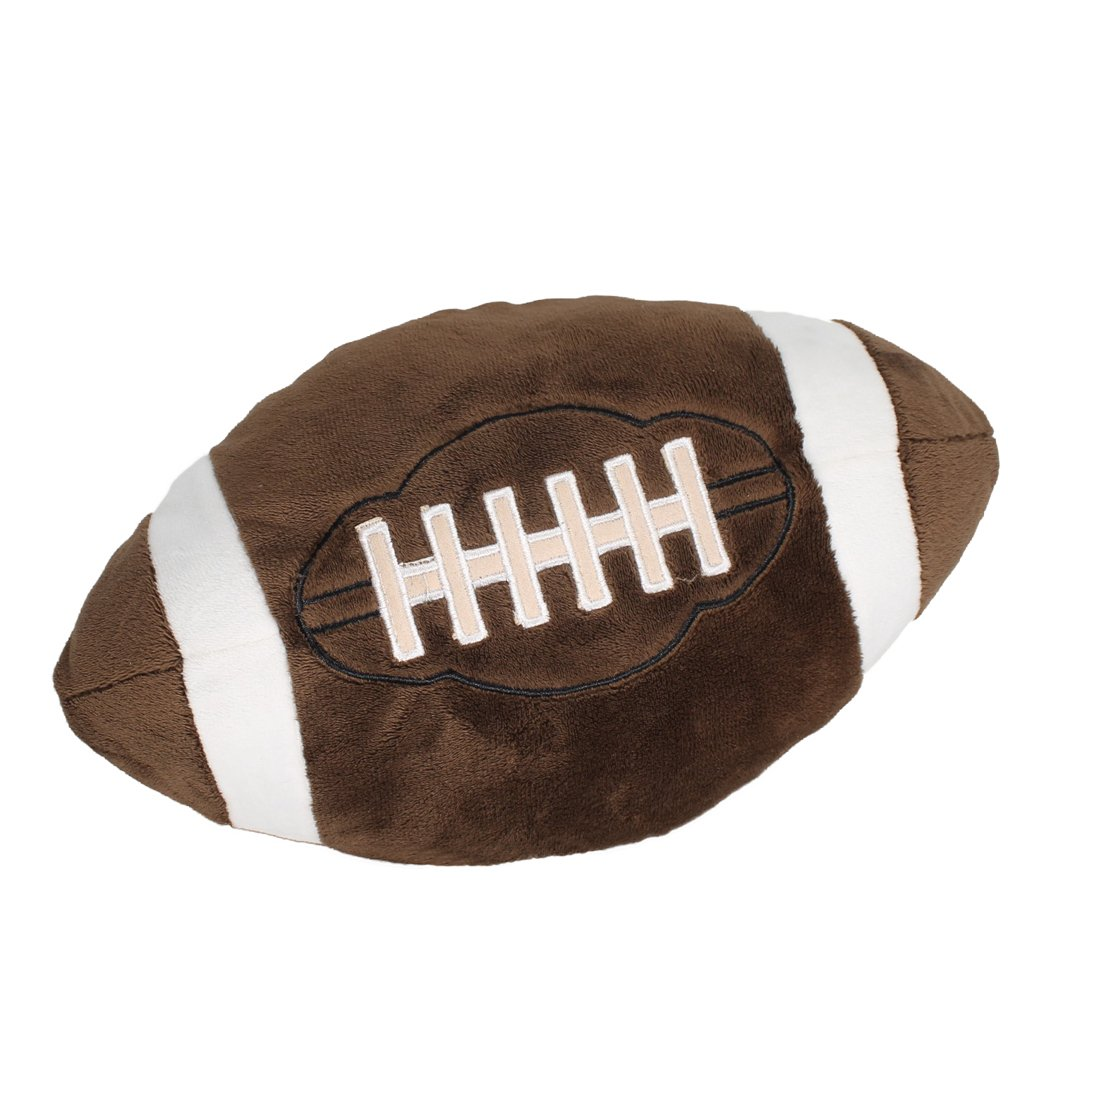 CatchStar Football Plush Pillow Fluffy Stuffed Ball Throw Soft Durable Sports Toy Gift for Kids Room Decoration